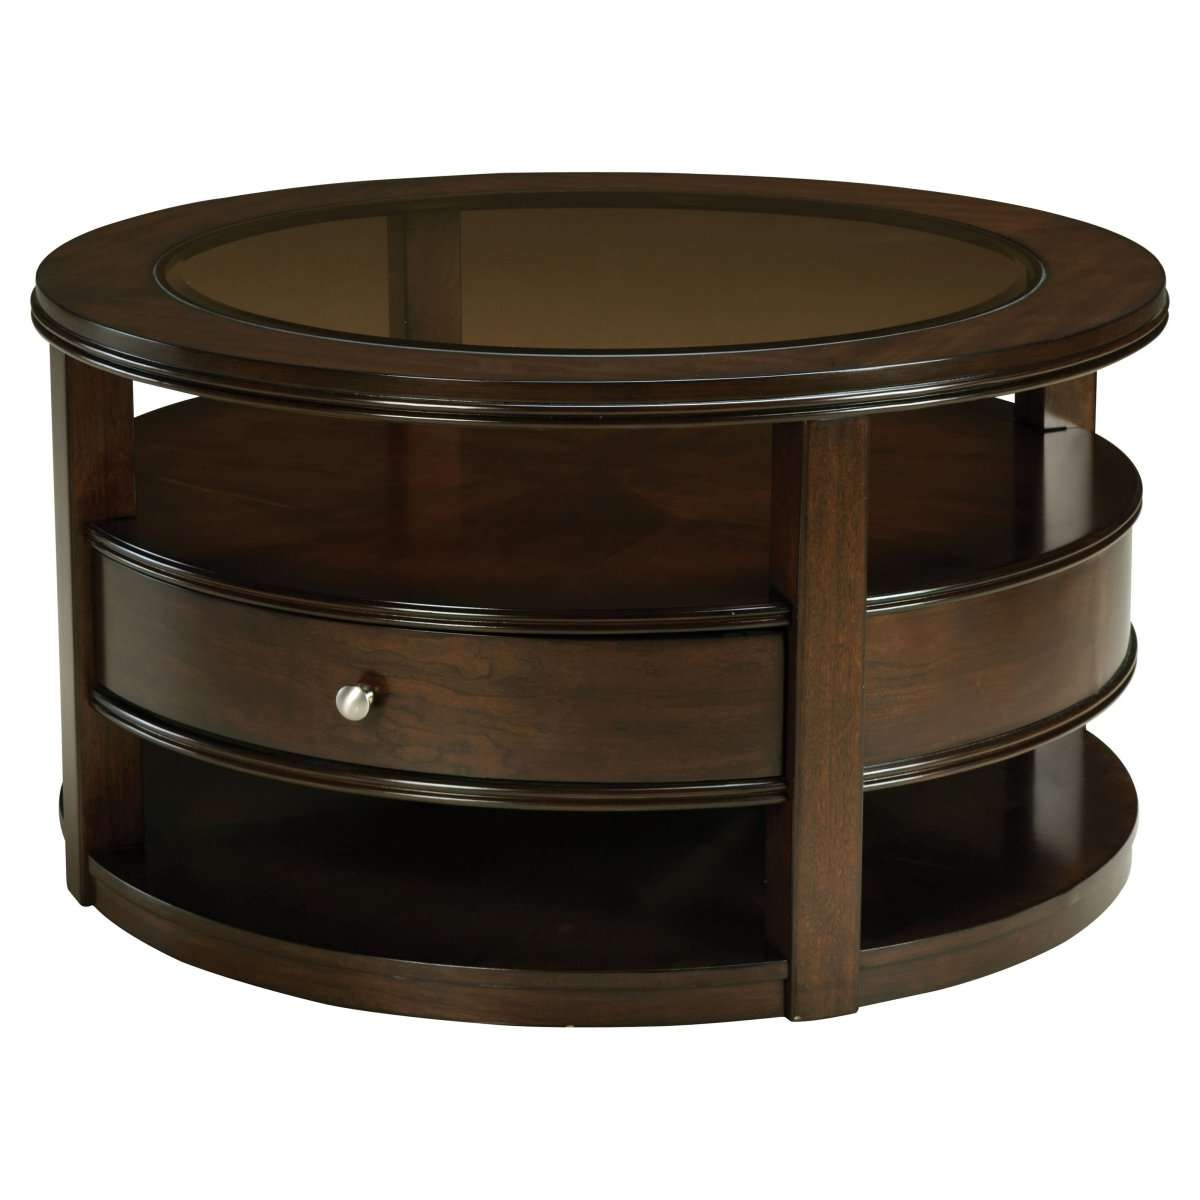 Round Glass Coffee Table Tags : Magnificent Coffee Tables With With Regard To Fashionable Round Coffee Tables With Drawers (View 3 of 20)